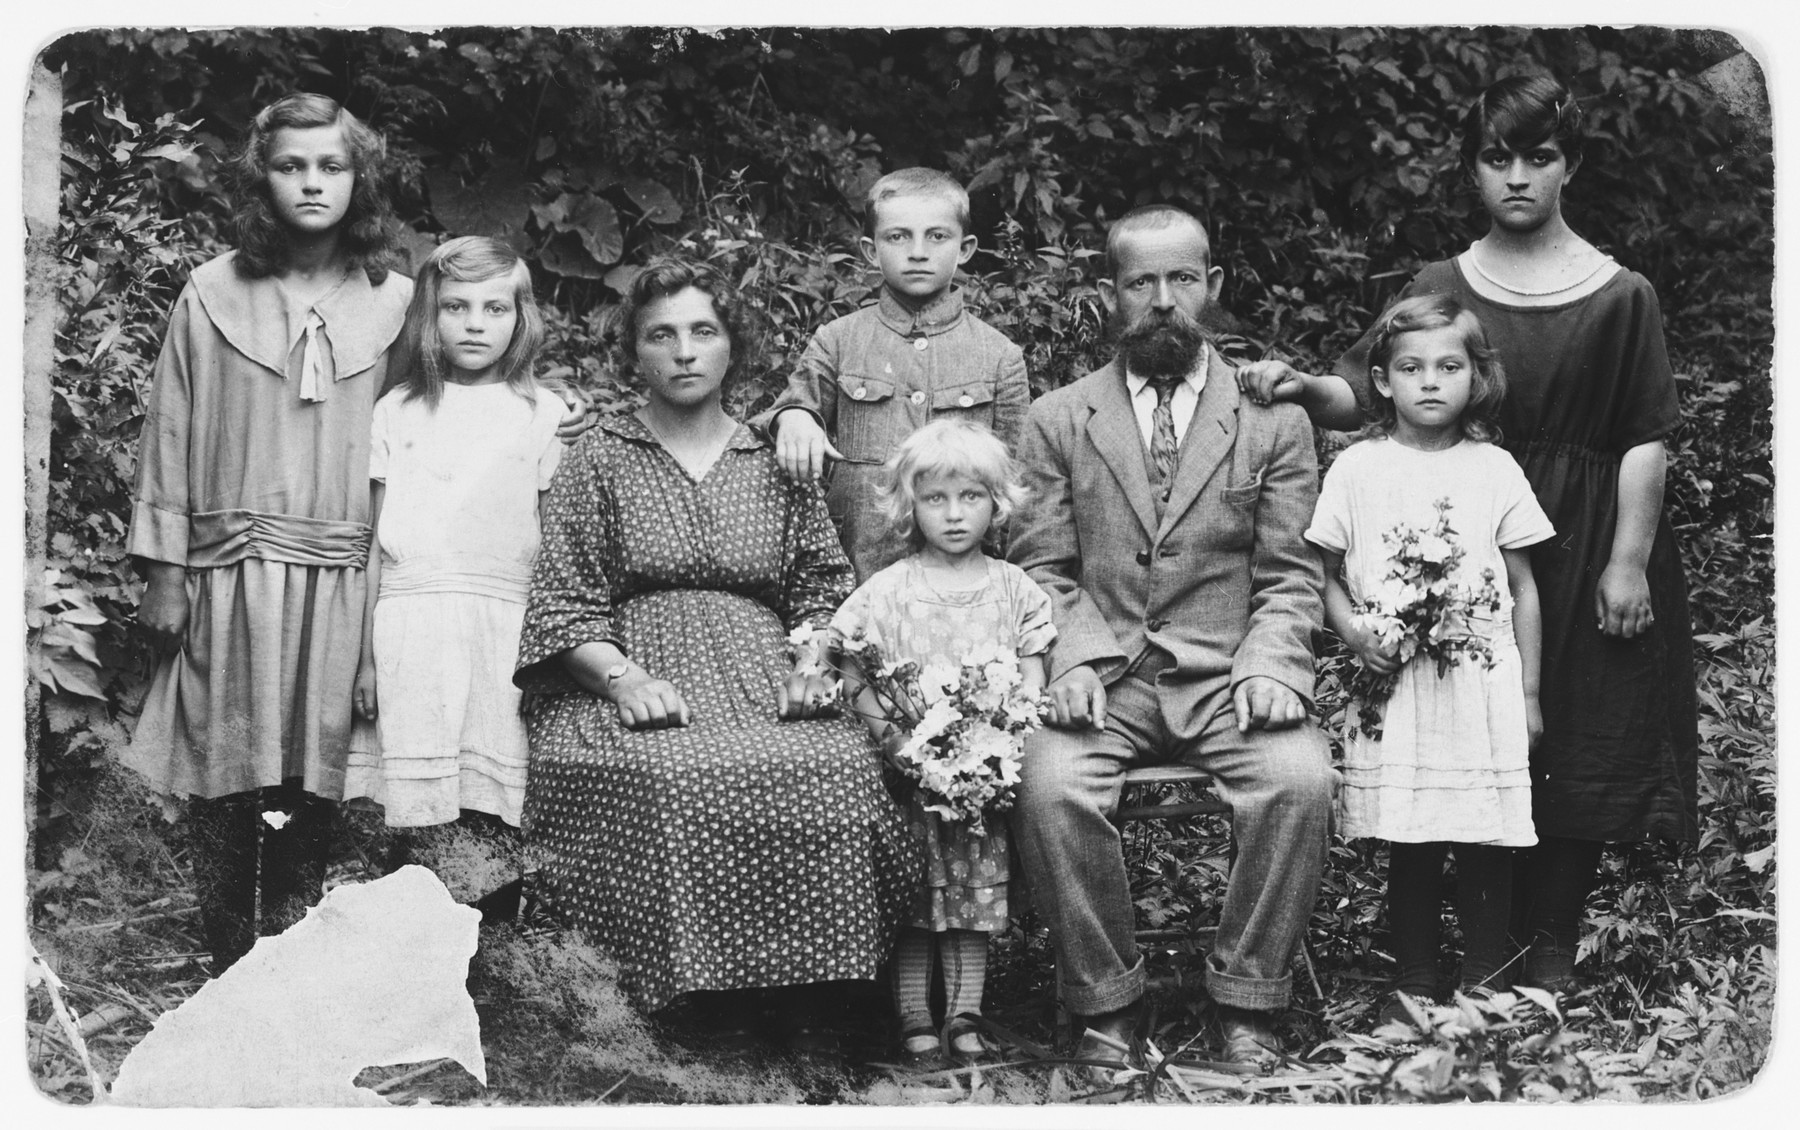 Mordechai and Sheindel Rajs pose outdoors with their six children.